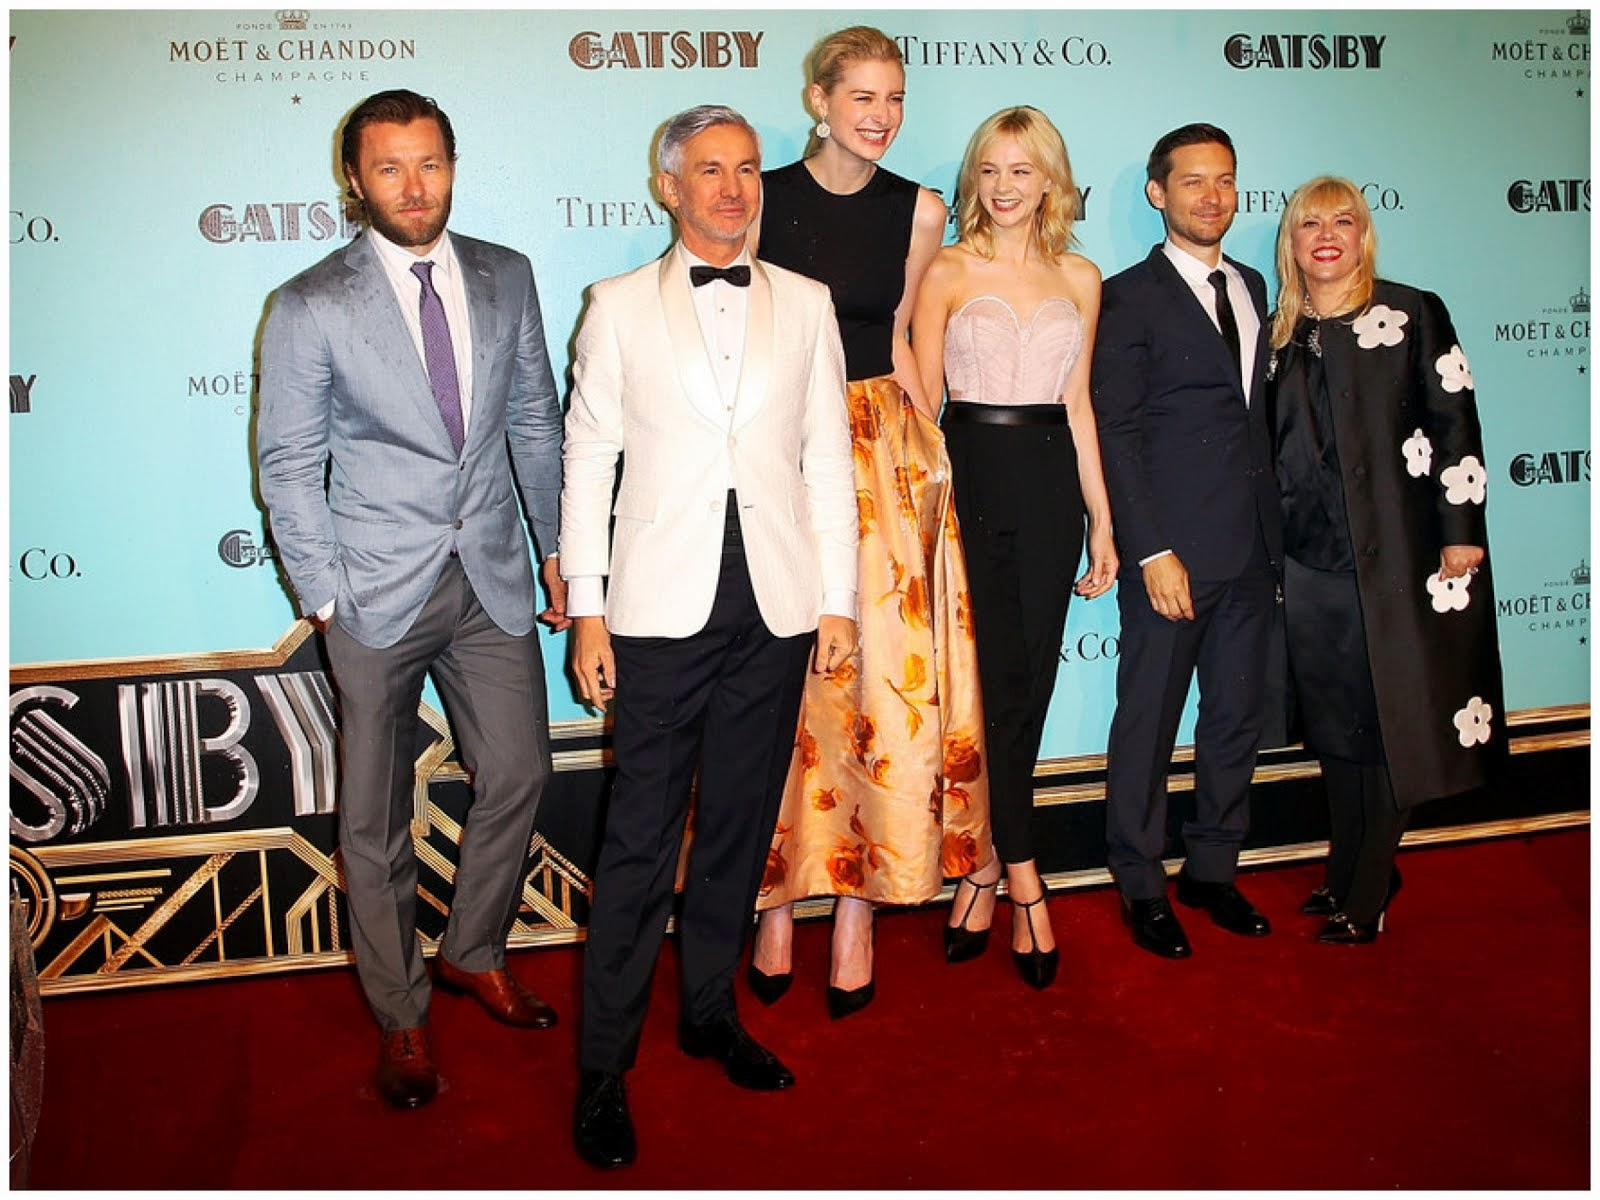 00O00 Menswear Blog: Baz Luhrmann in Black Fleece Brooks Brothers WHITE SHAWL COLLAR TUXEDO JACKET - 'Great Gatsby' Australia Premiere May 2013